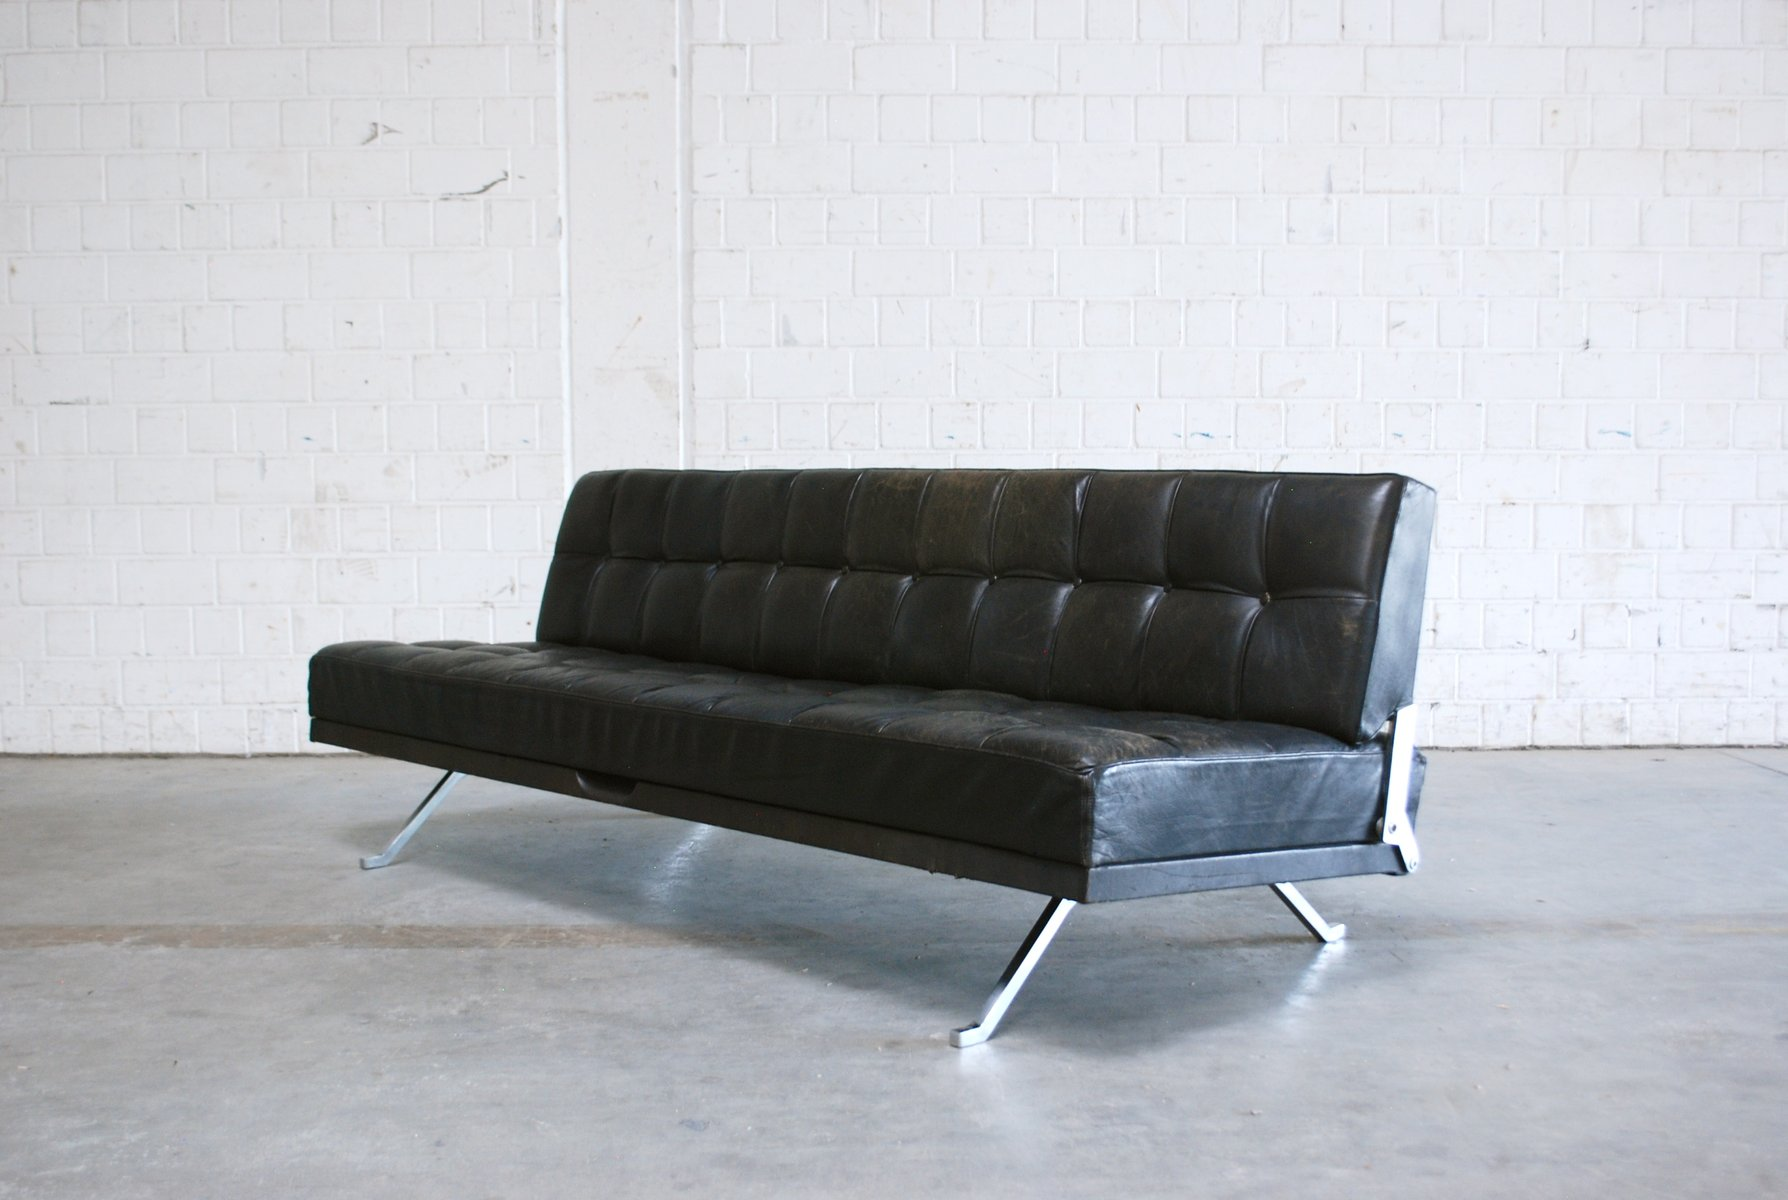 Schlafsofa Wittmann Constanze Leather Sofa Or Daybed By Johannes Spalt For Wittmann 1950s